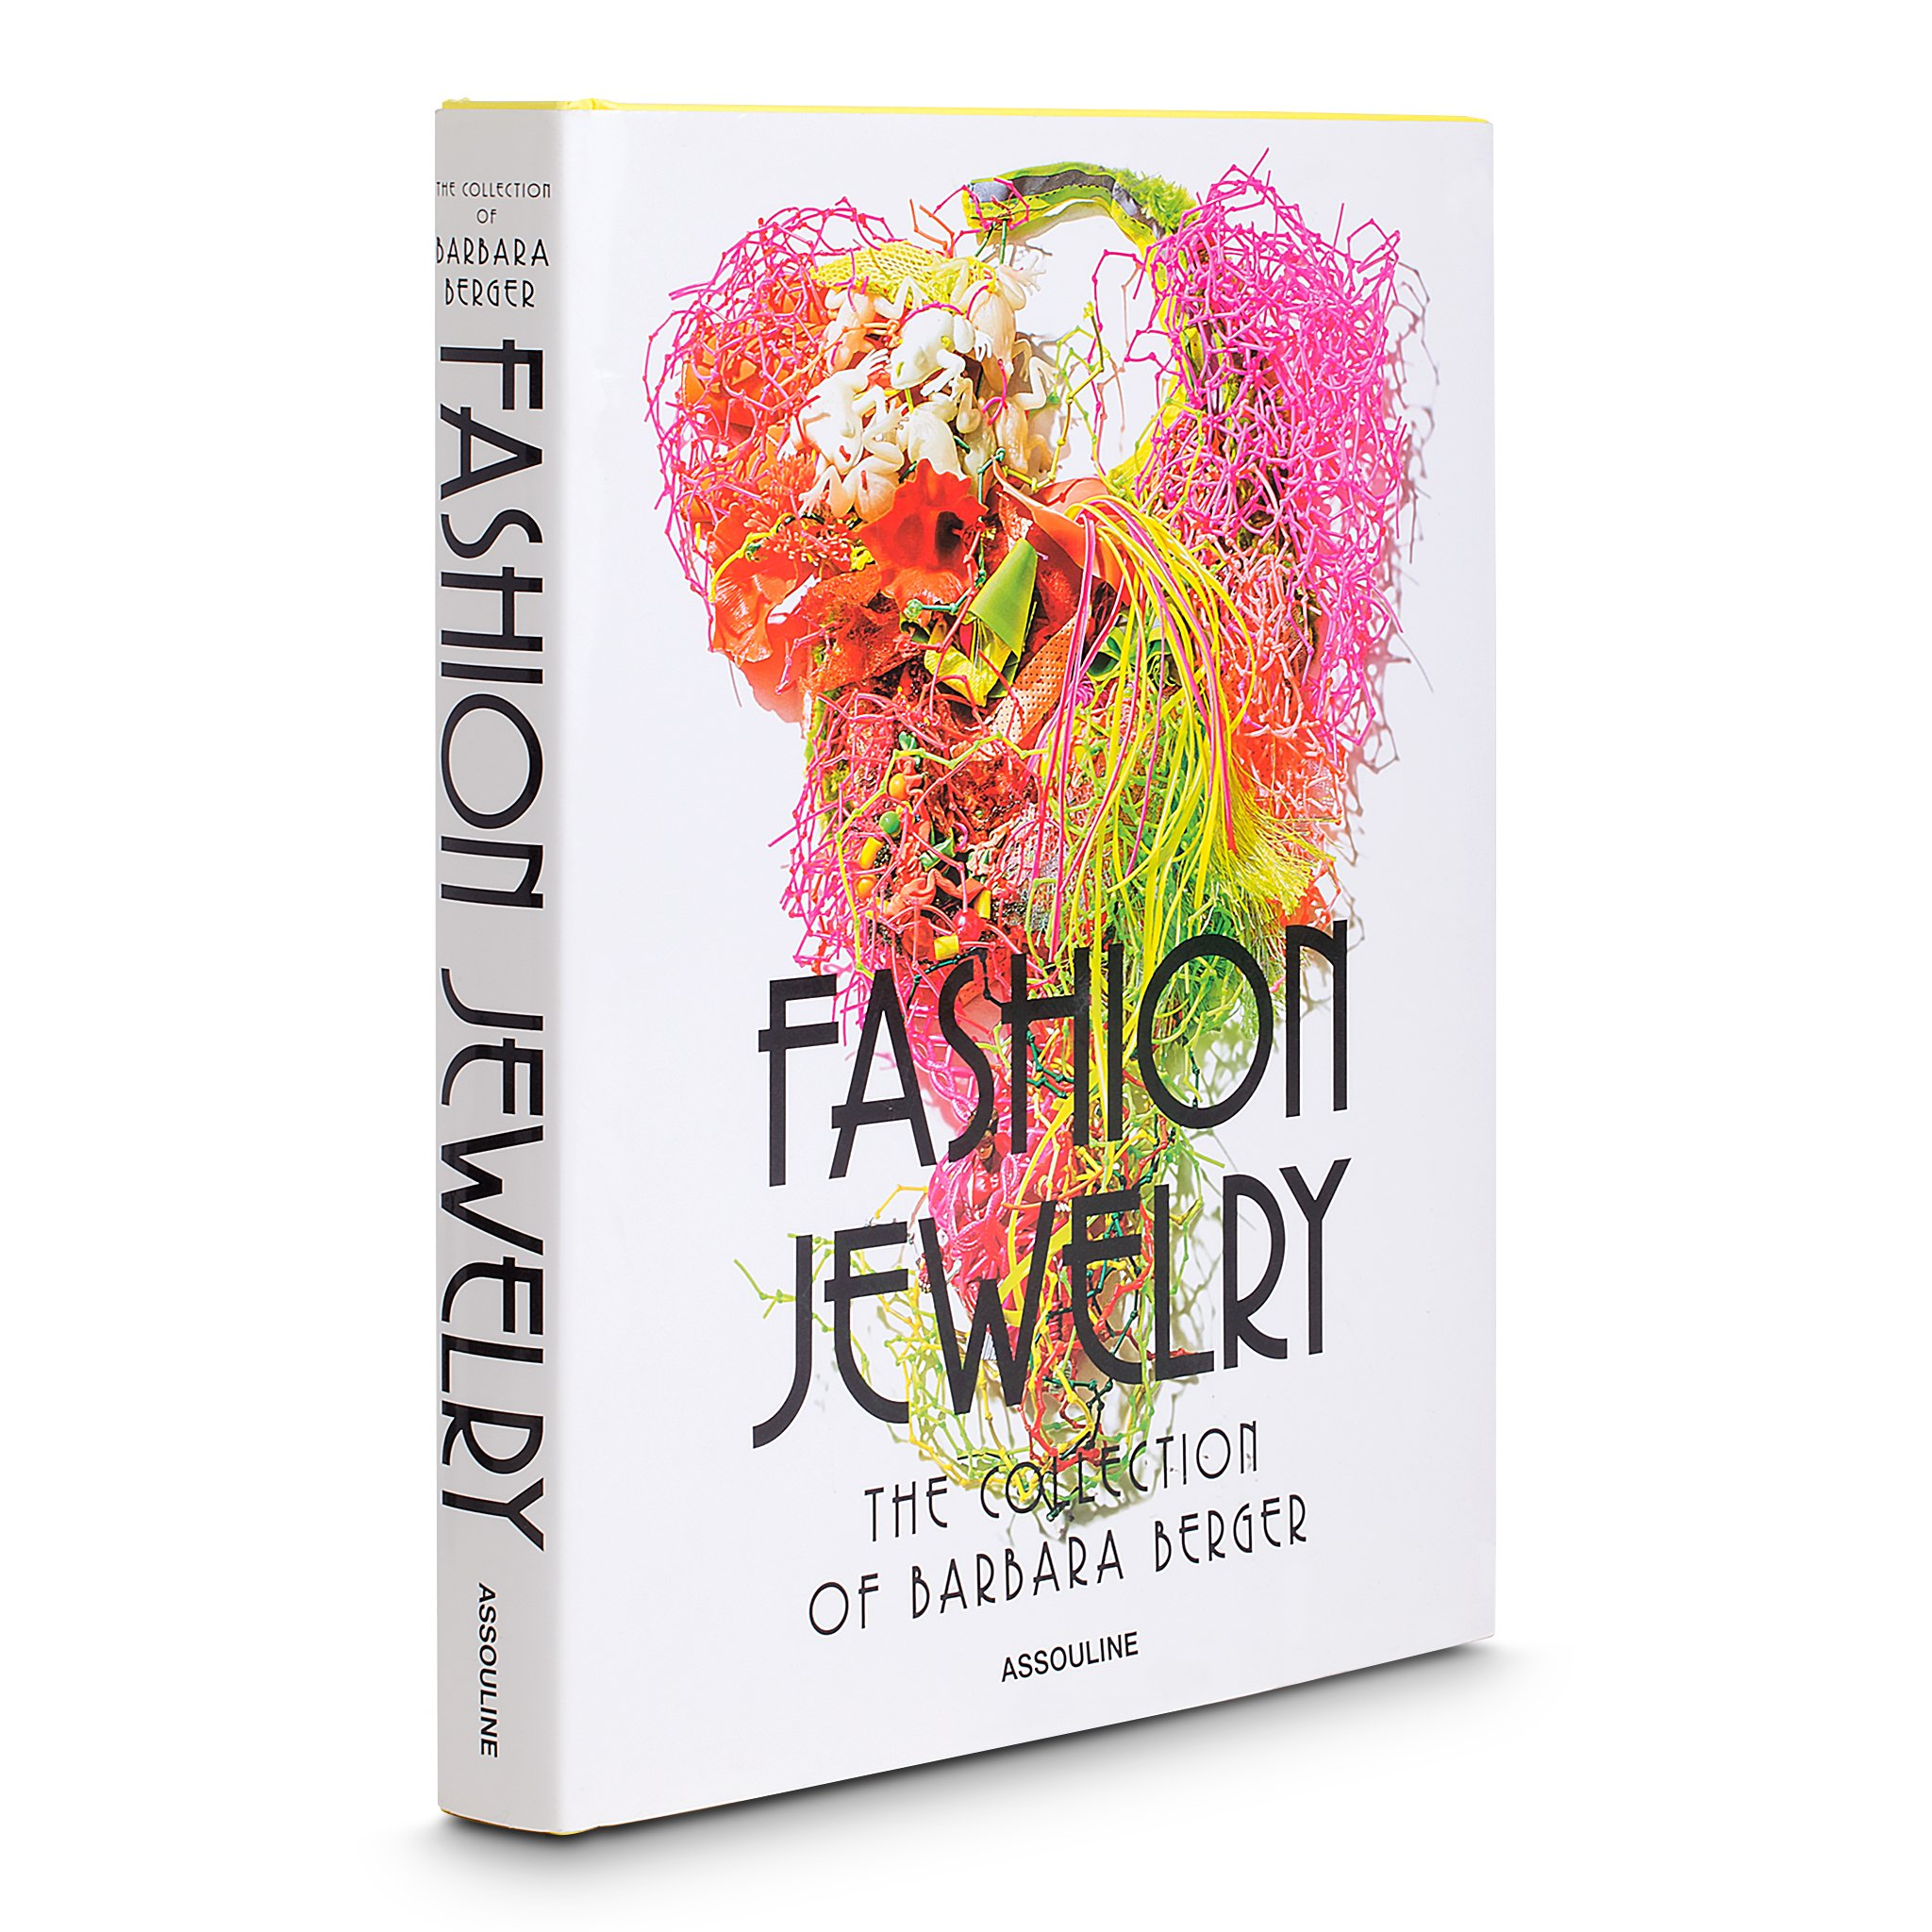 Fashion Jewelry: the Collectin of Barbara Berger (Classics)